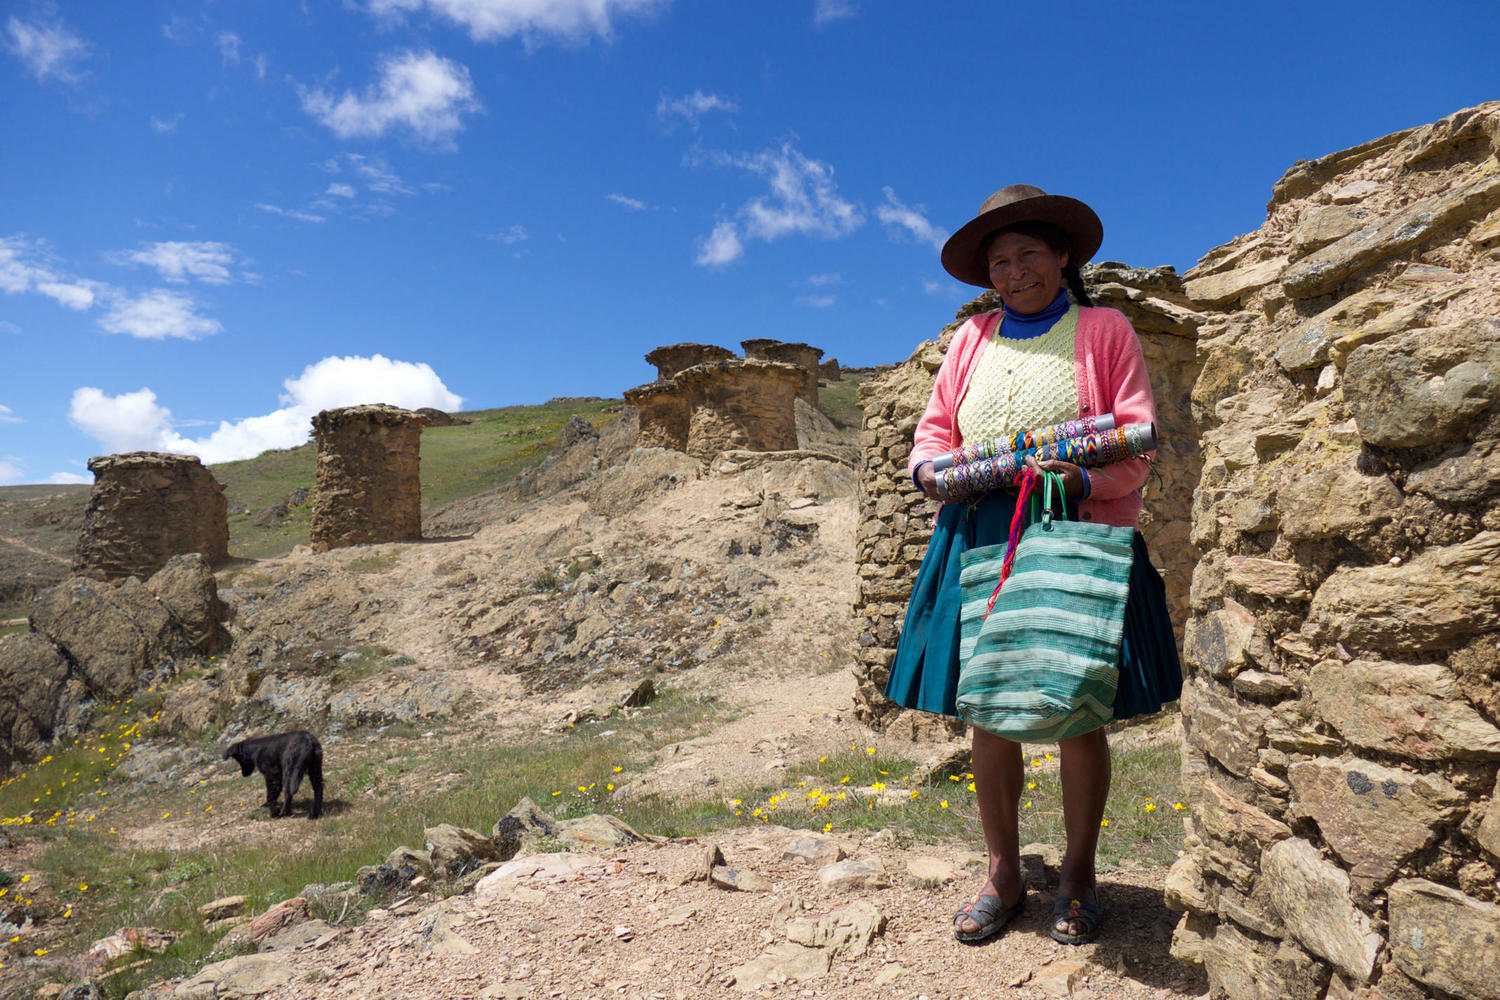 Lady selling bracelets at Ninamarca, a pre-Inca site on the way to Manu